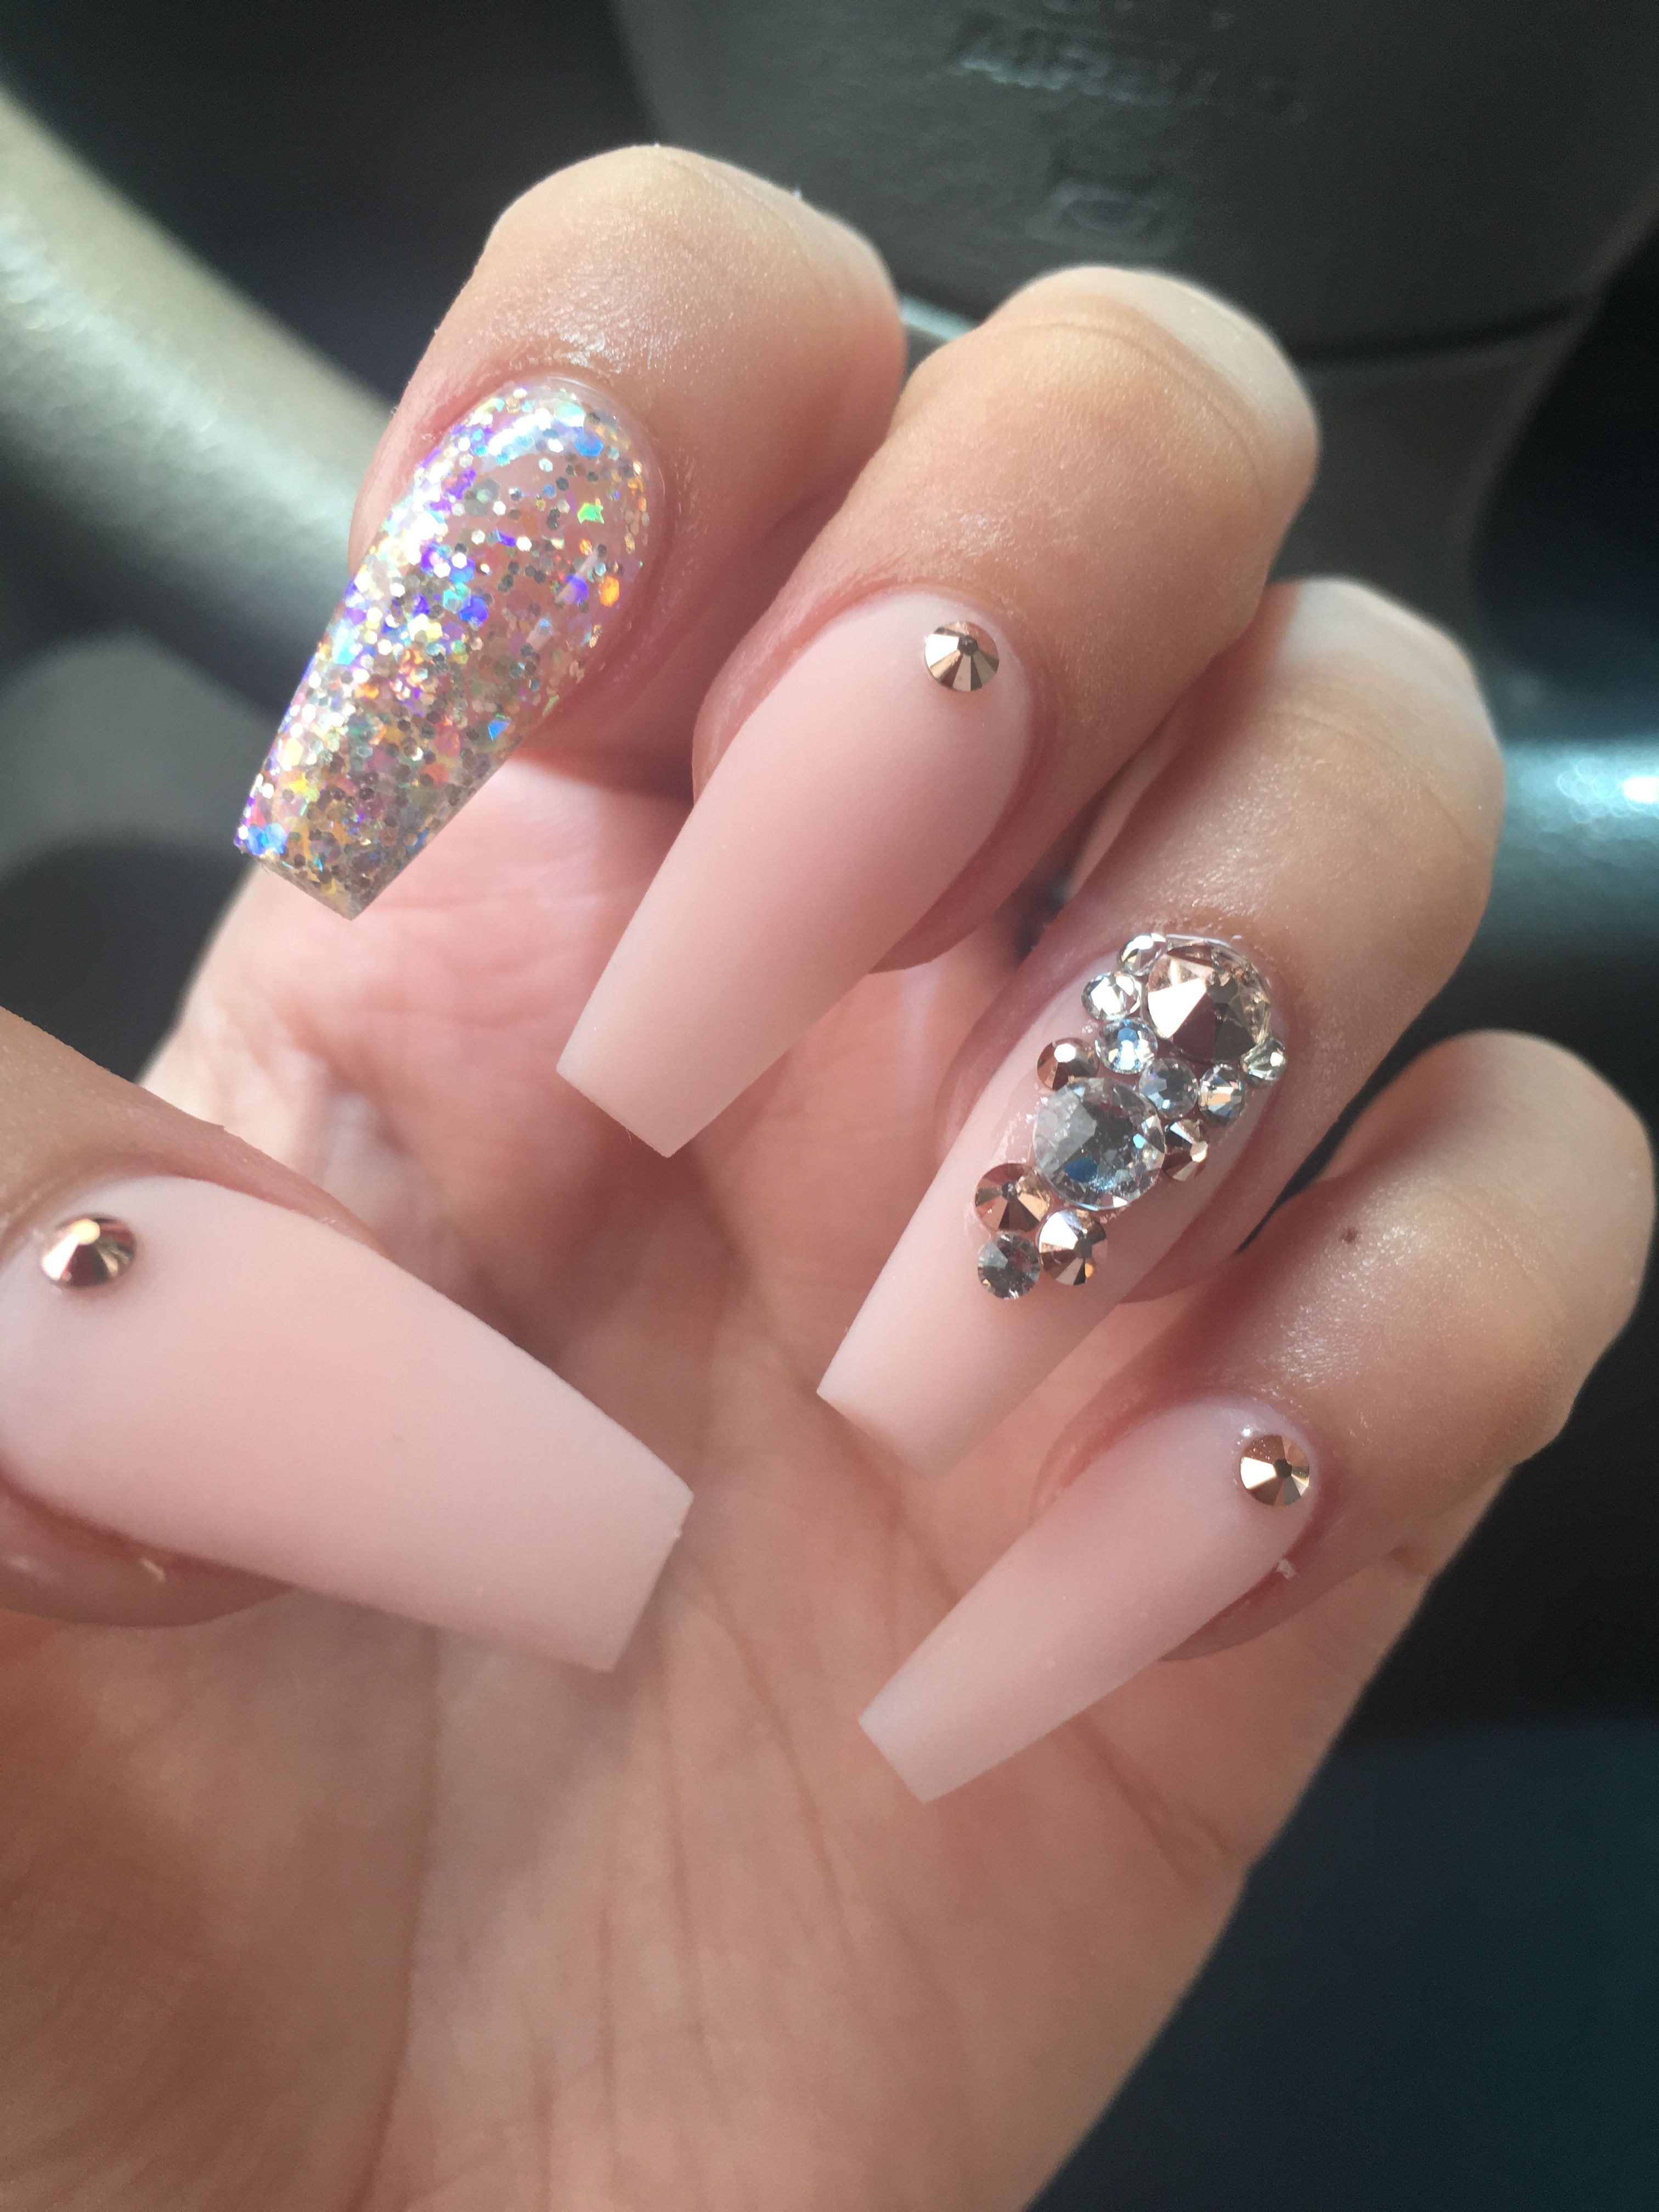 Acrylic Nails Coffin Diamonds Fall Is Coming And Many People Are Trying To Find The Best Ways To Spend Acrylic Nails Coffin Pink Matte Pink Nails Diamond Nails